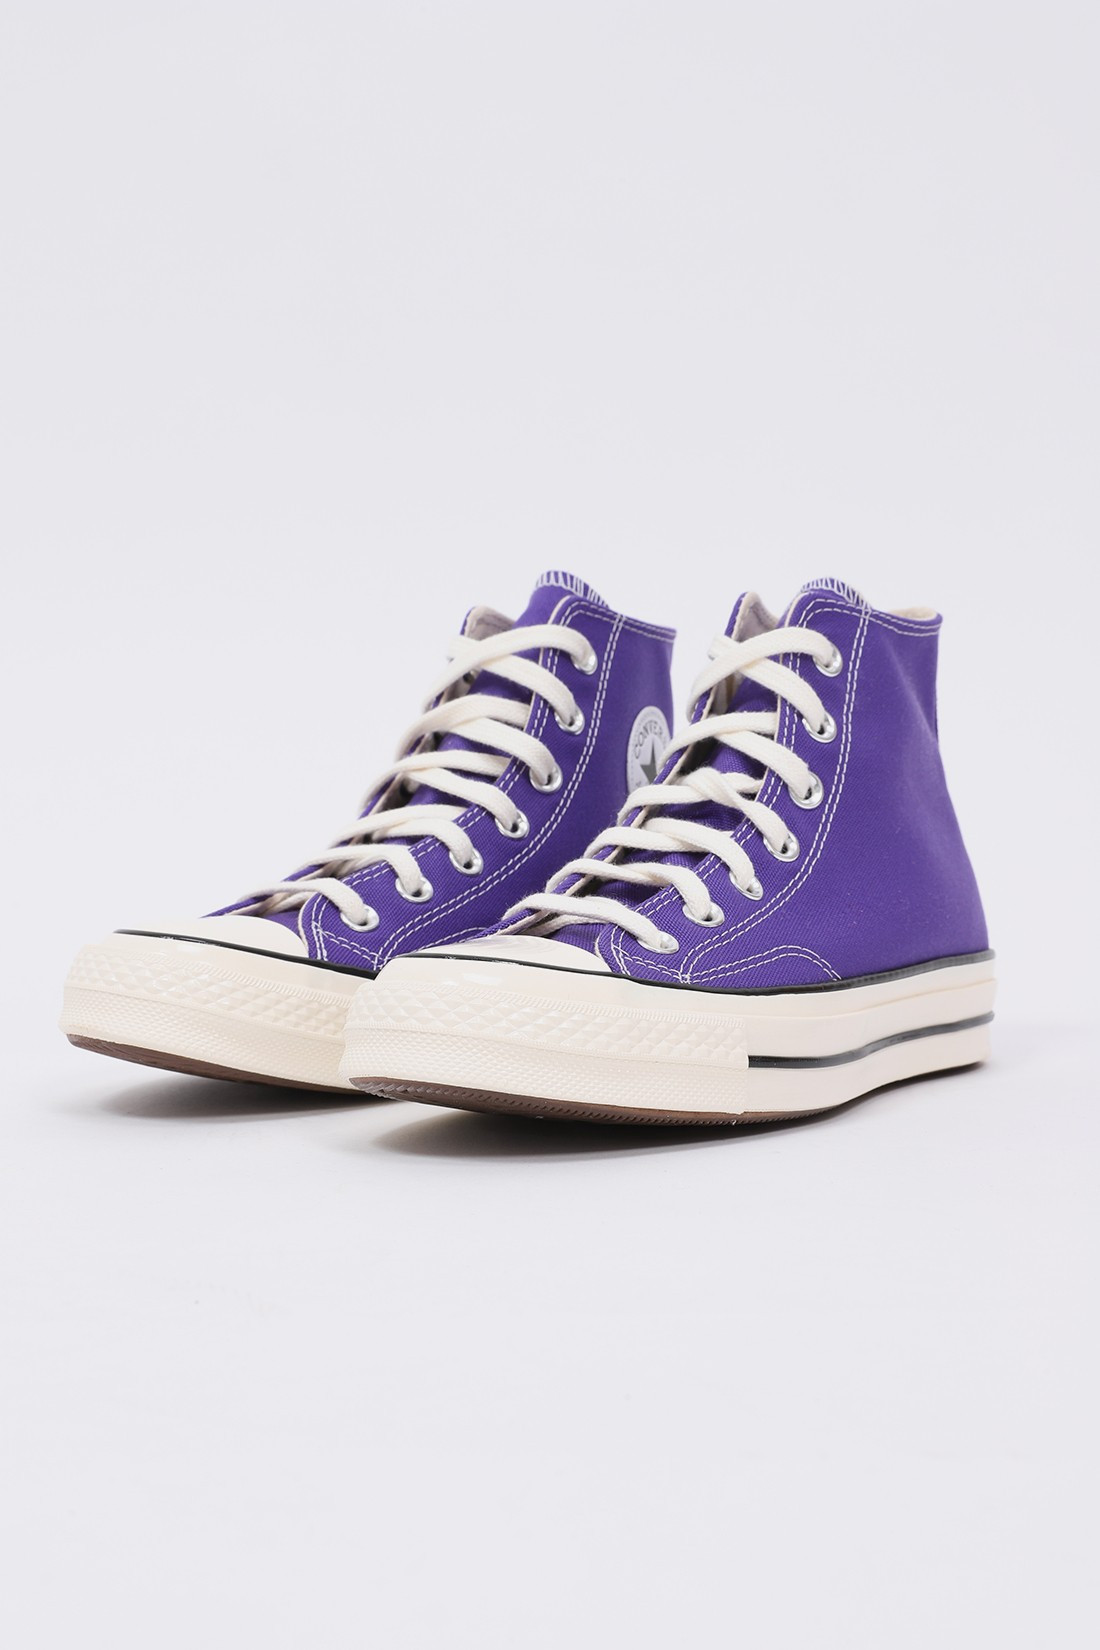 CONVERSE / Ctas 70's hi Candy grape